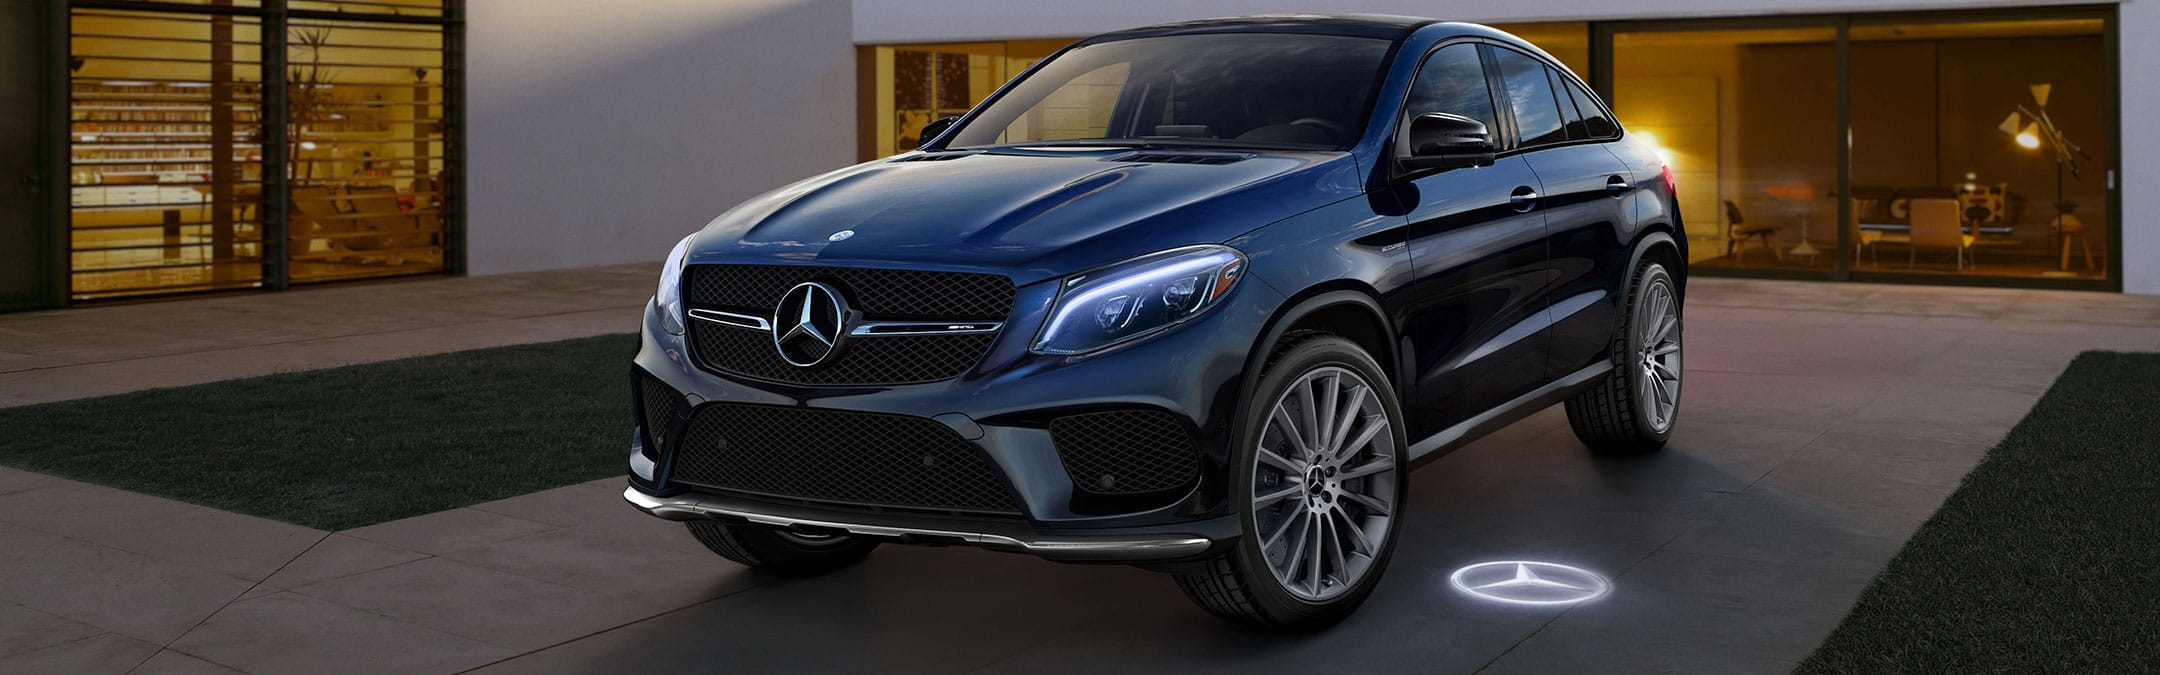 Gle Luxury Performance Coupe Mercedes Benz Mercedes Benz Usa